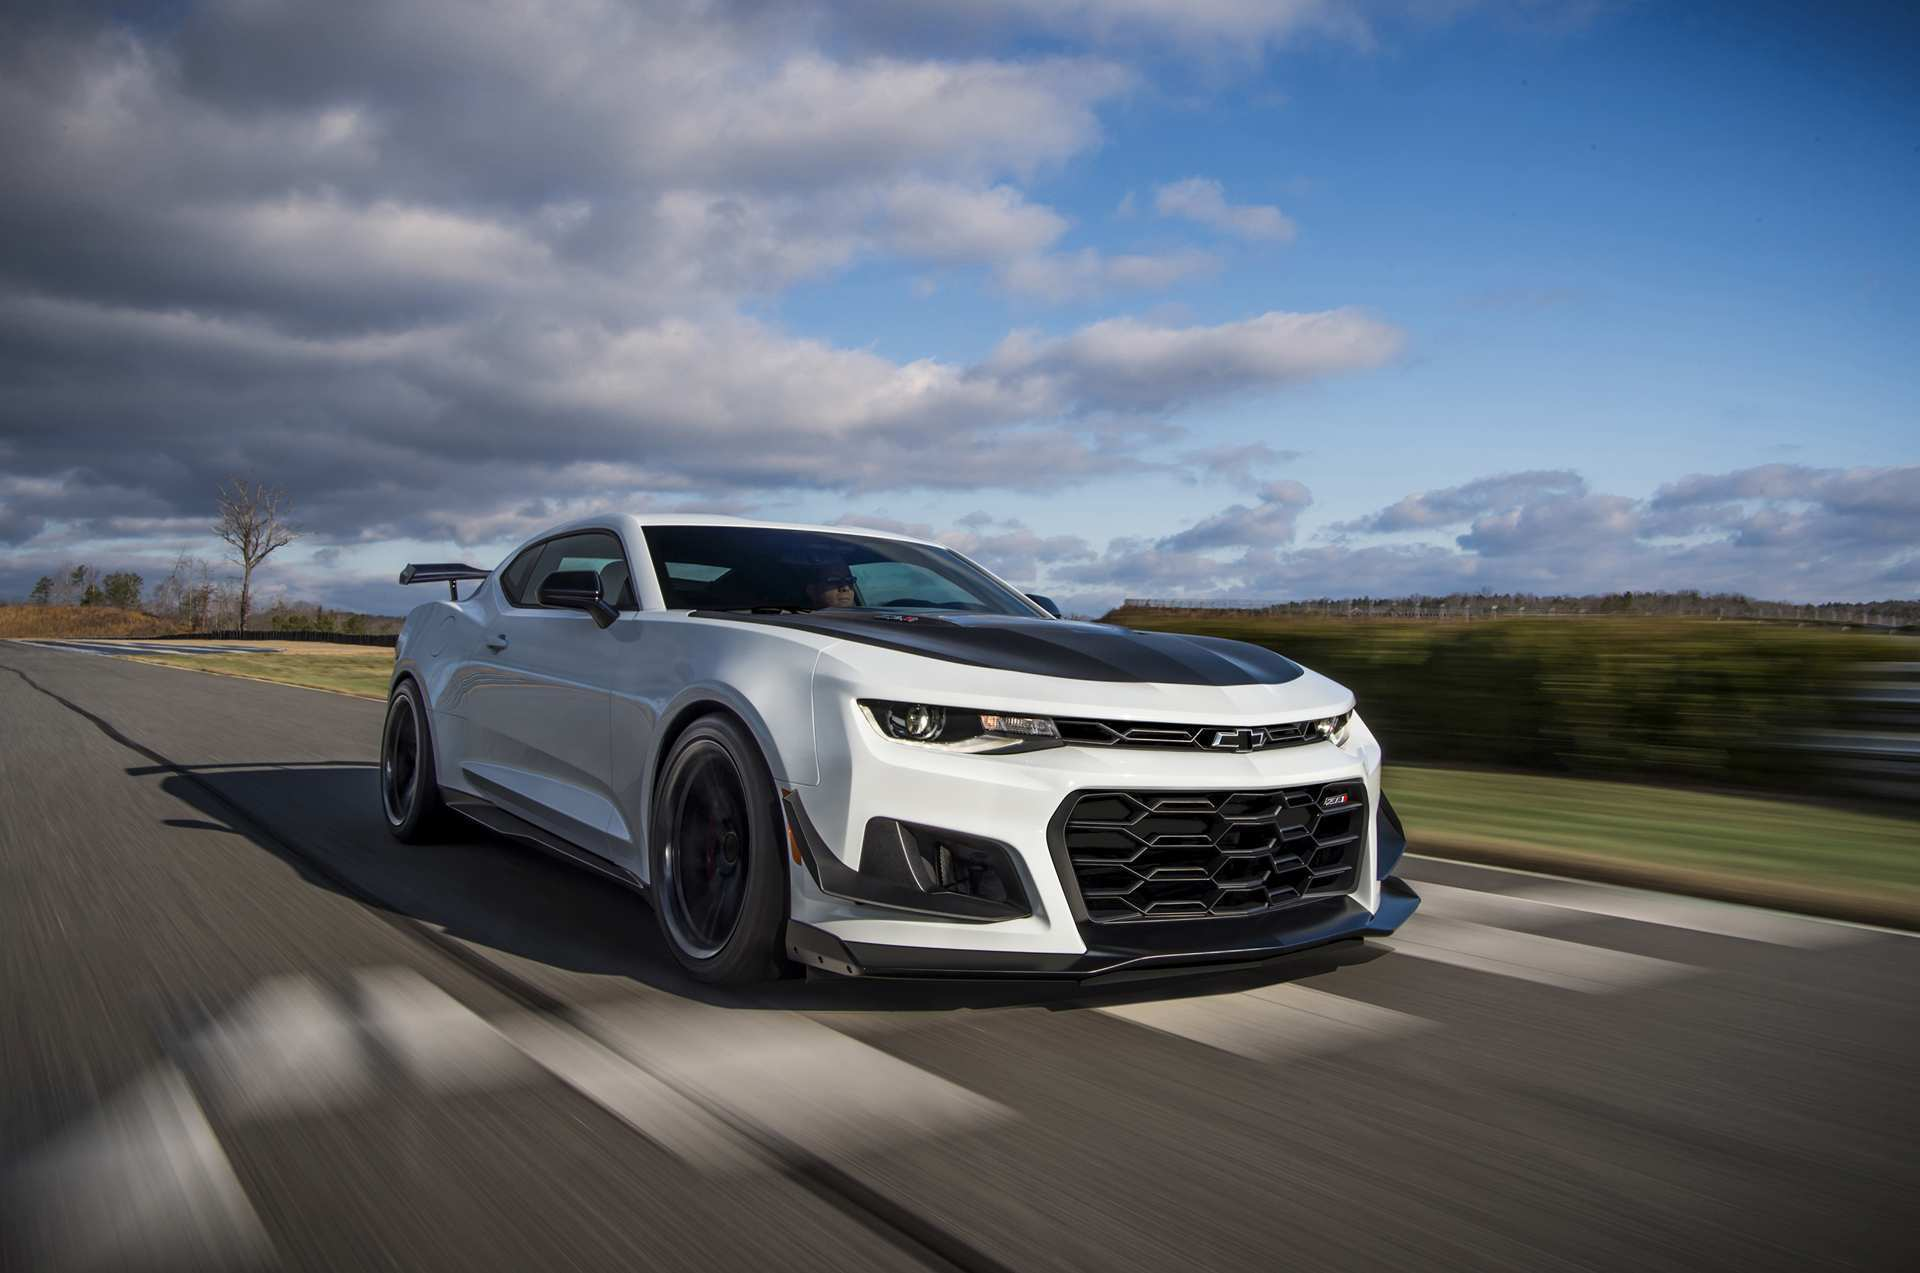 98 A 2020 The Camaro Ss Configurations